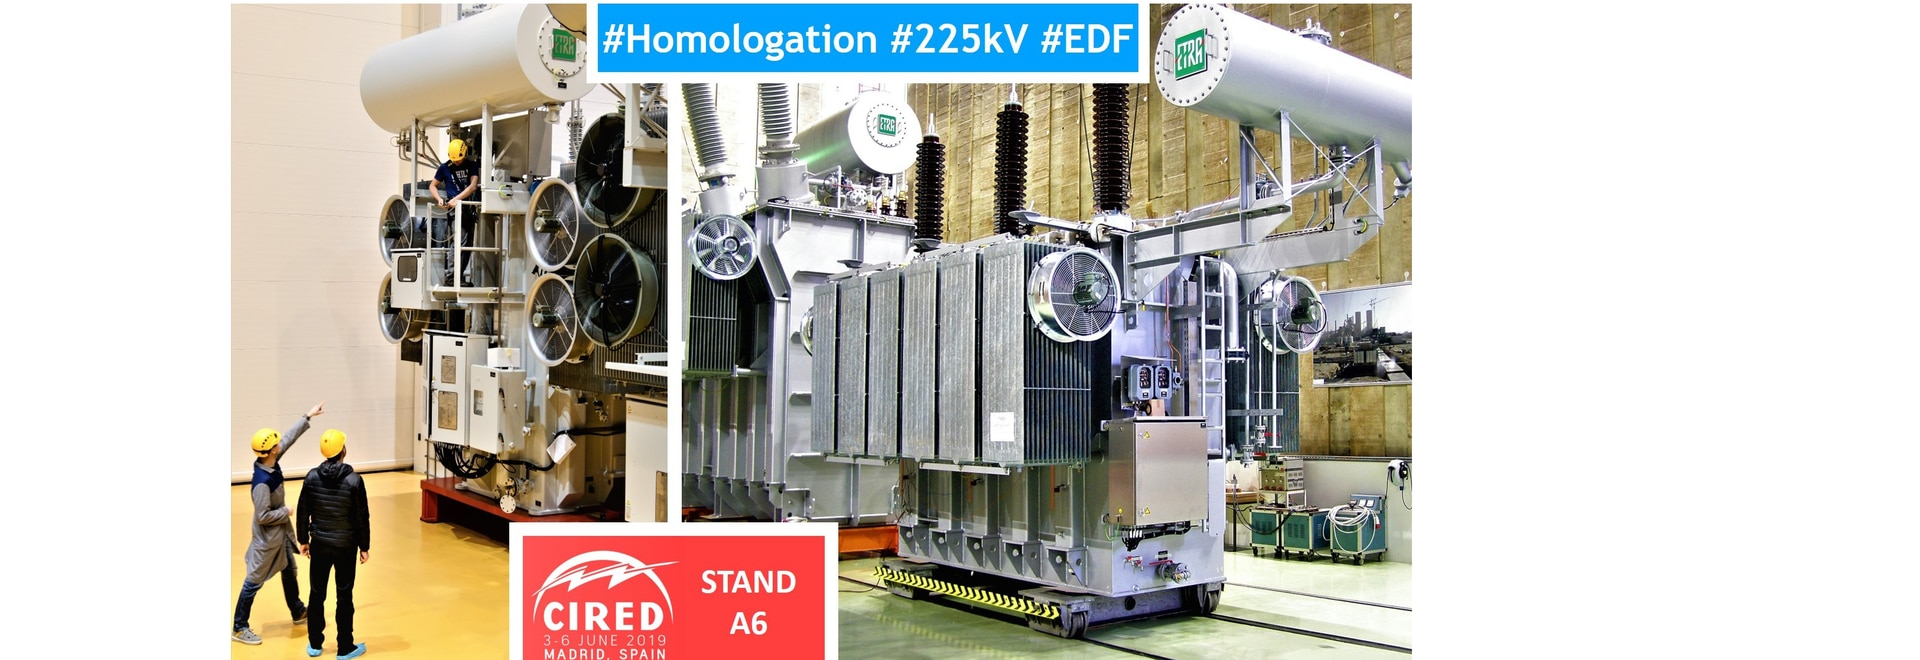 SANERGRID and KOLEKTOR ETRA have obtained the EDF approval for their 225 KV oil power transformers.